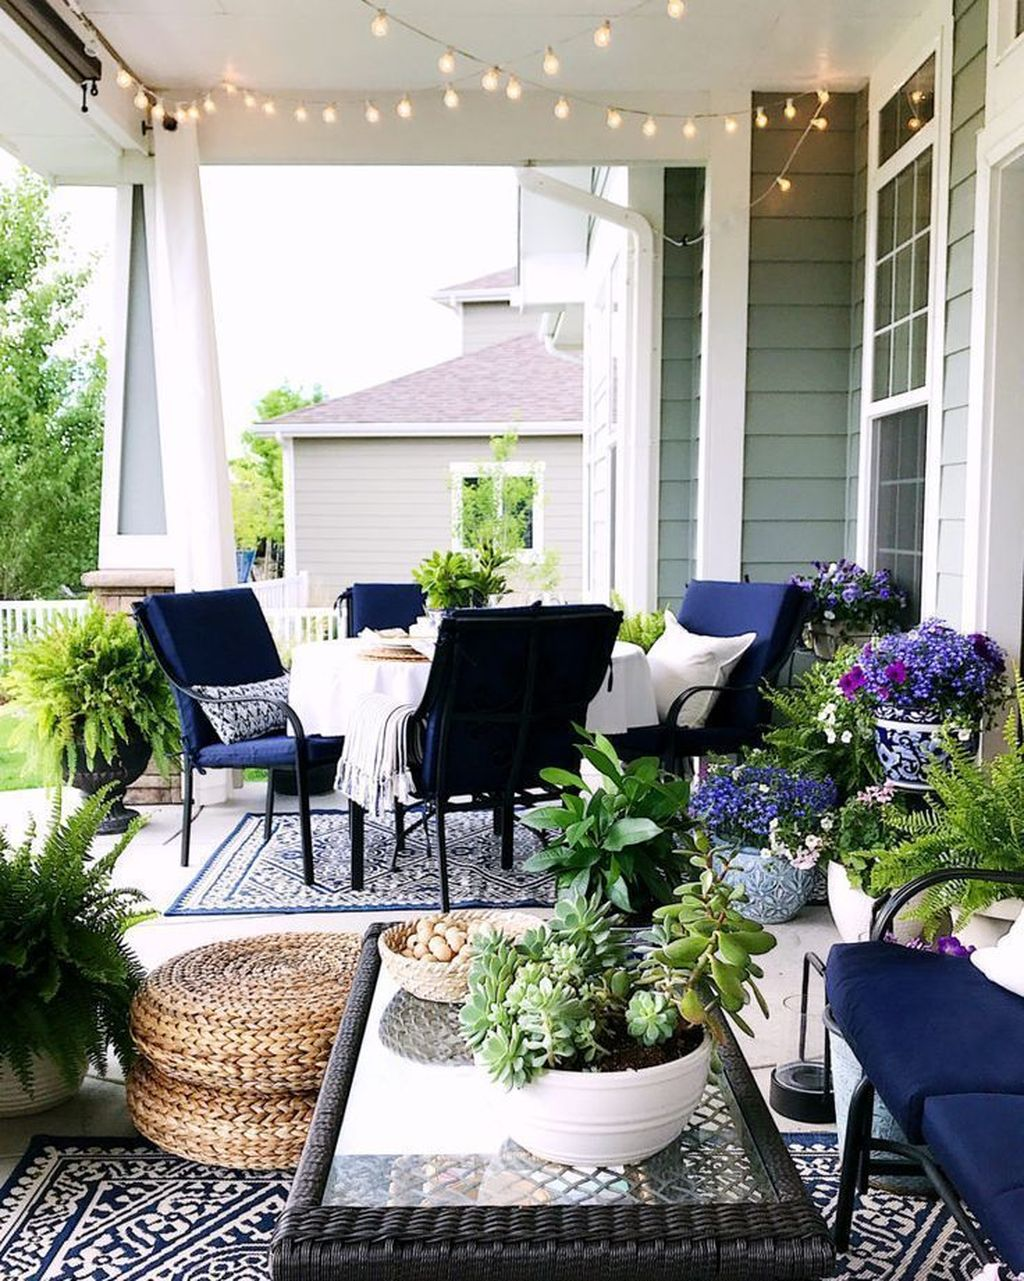 Admirable Cozy Patio Design Ideas To Relaxing On A Sunny Day 22